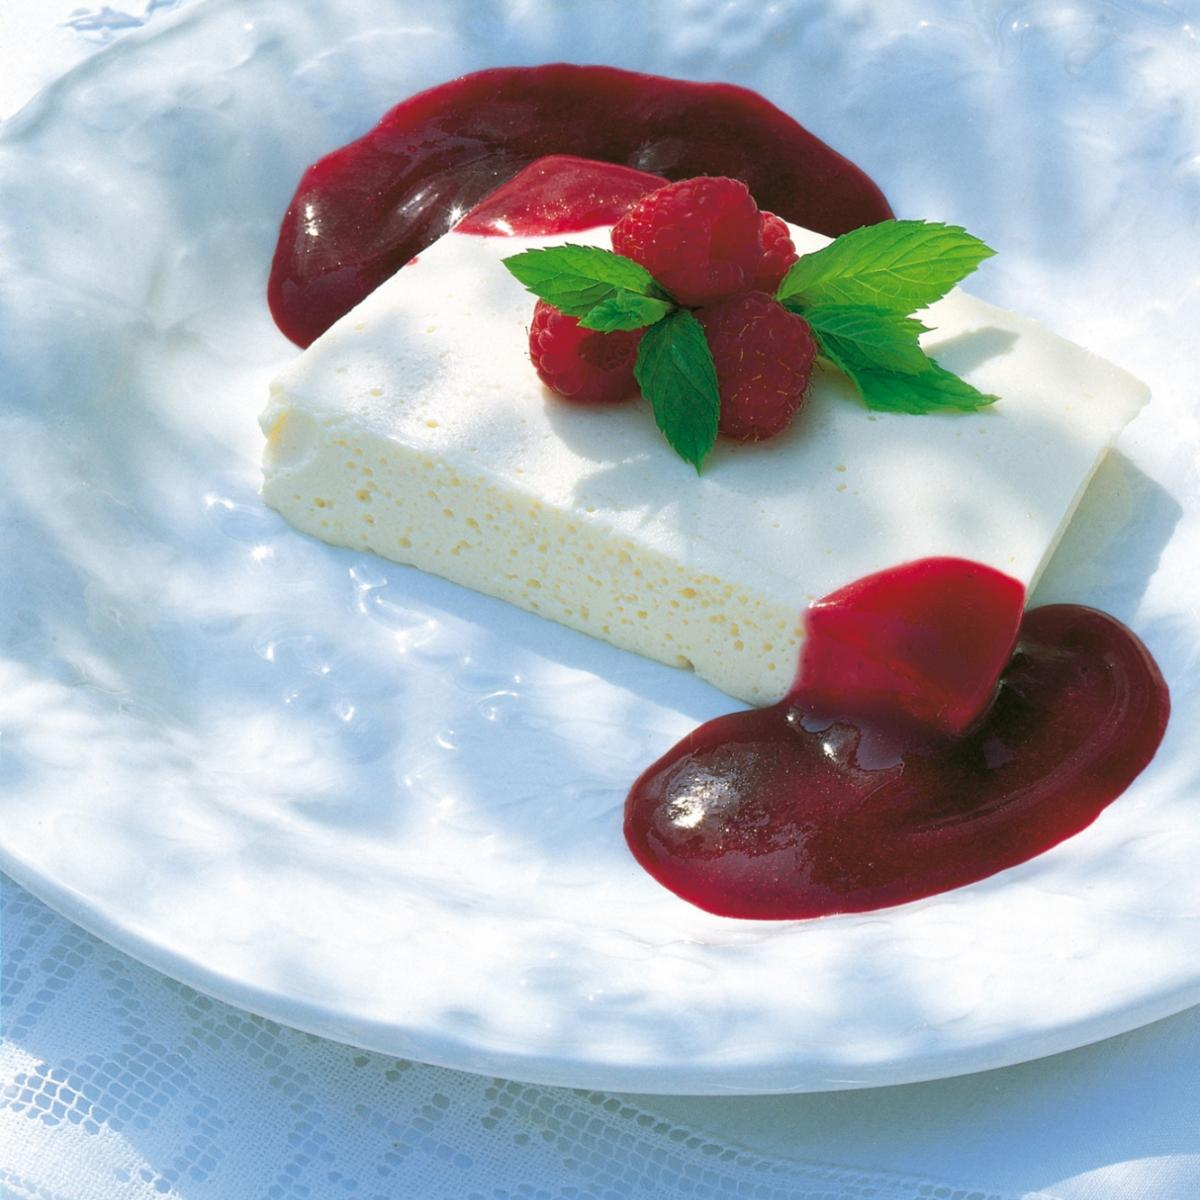 A picture of Delia's Vanilla Cream Terrine with Raspberries and Blackcurrant Coulis recipe